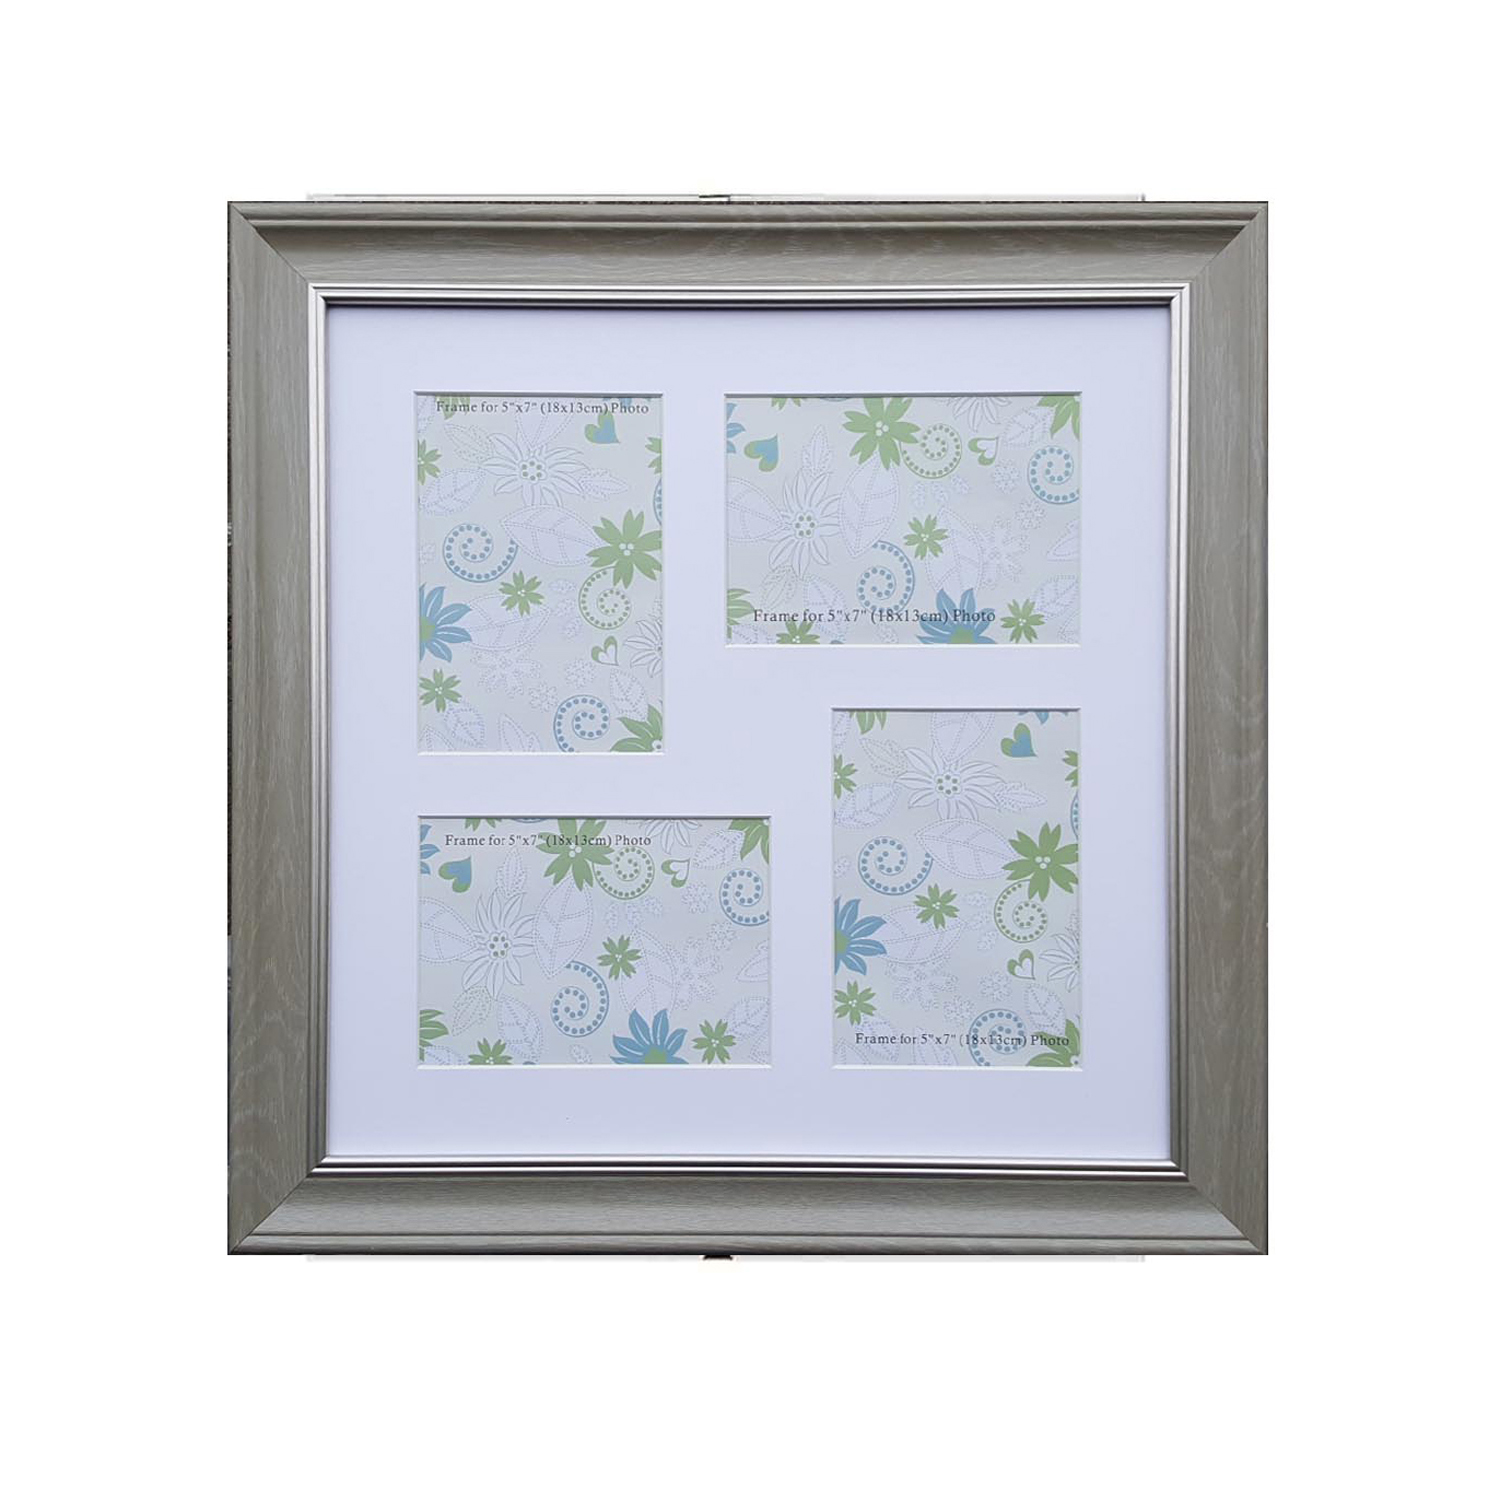 Beautiful Silver Collage Picture Frames Image - Picture Frame Ideas ...